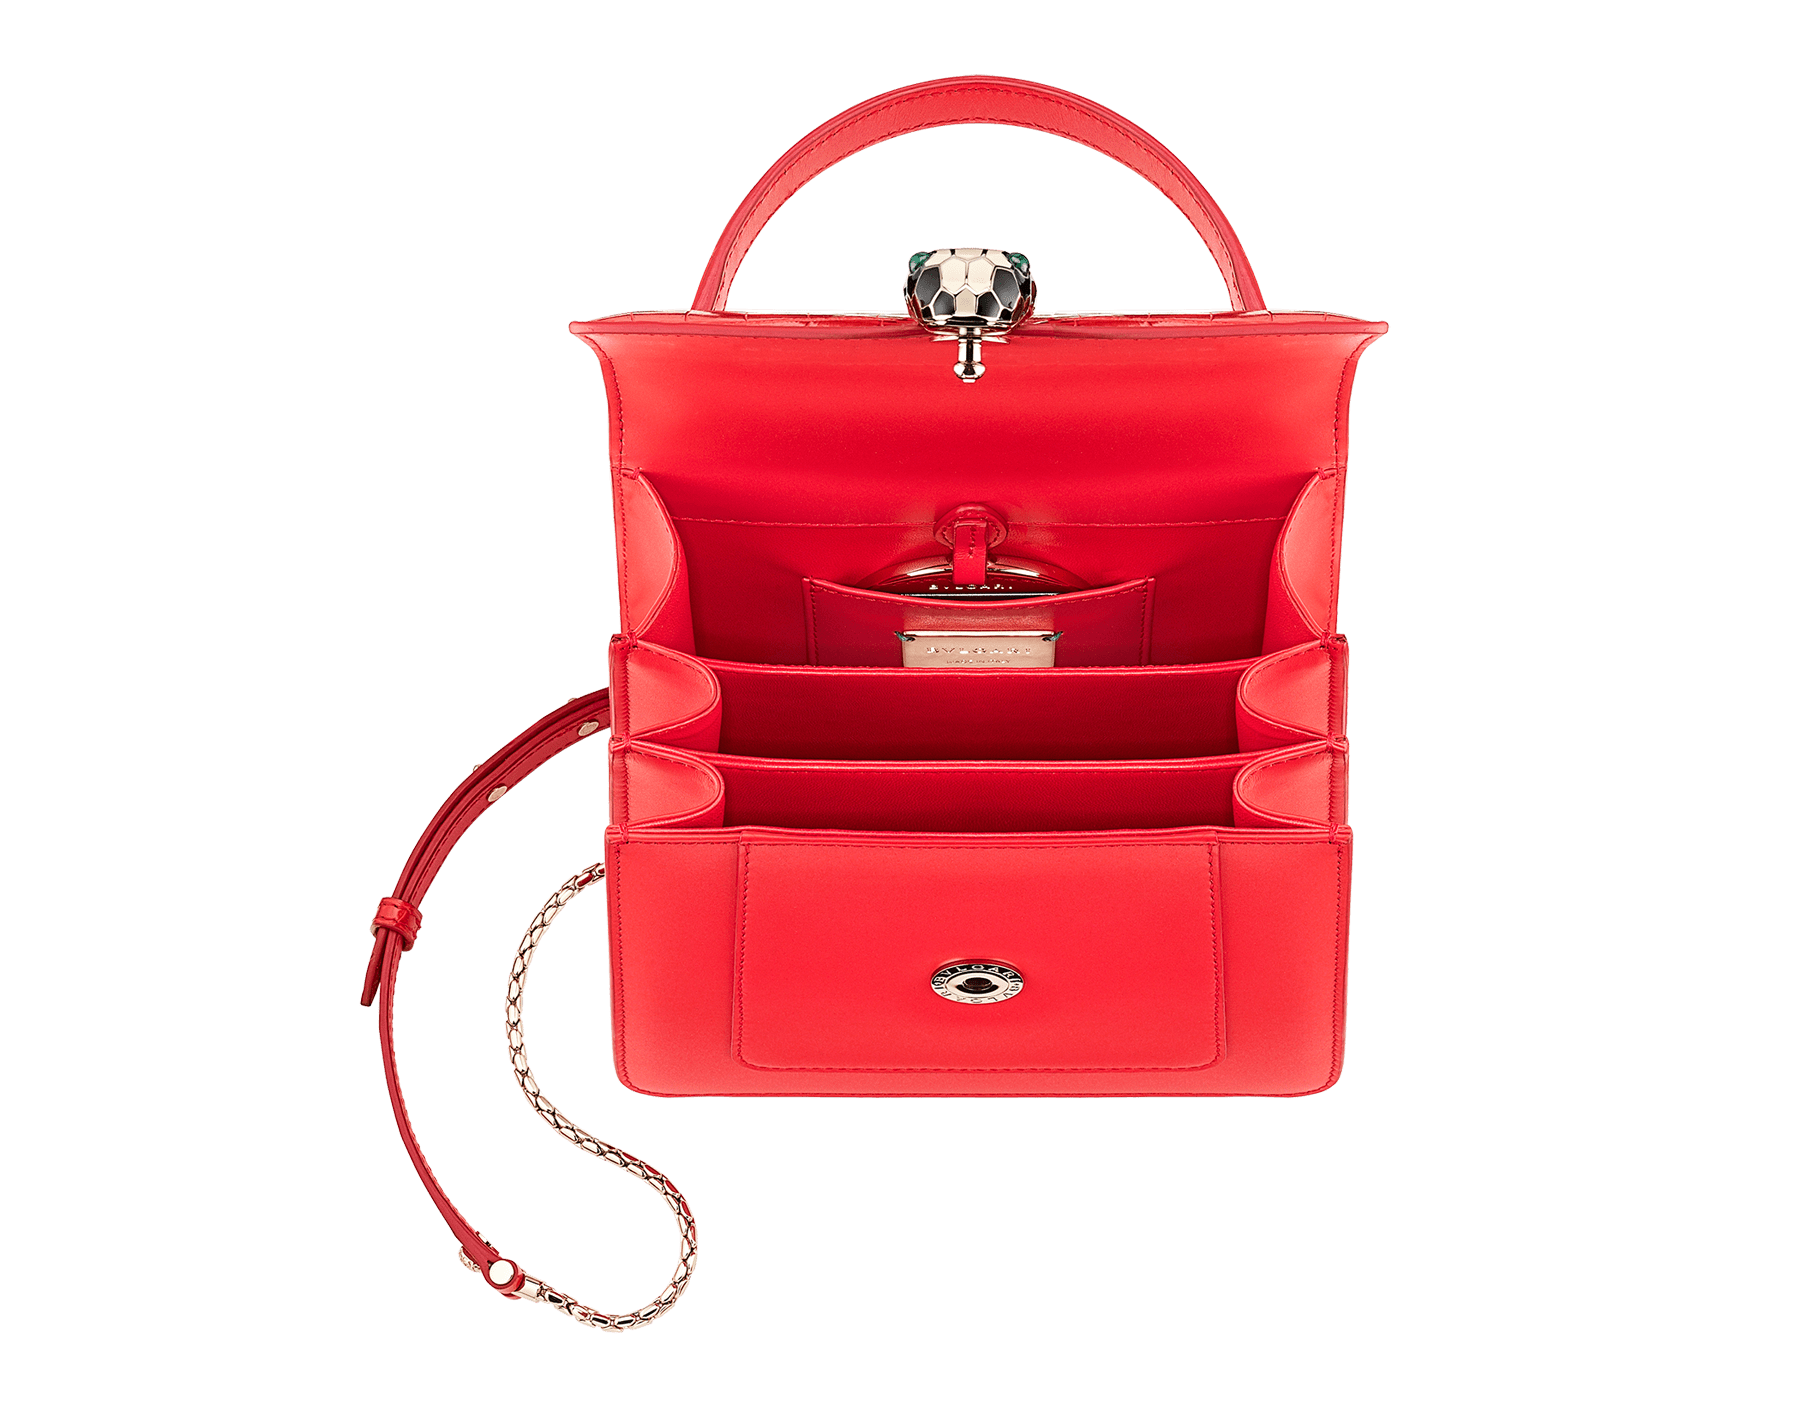 Serpenti Forever crossbody bag in sea star coral shiny croco skin and smooth calf leather. Snakehead closure in light gold plated brass decorated with black and white enamel, and green malachite eyes. 288491 image 3